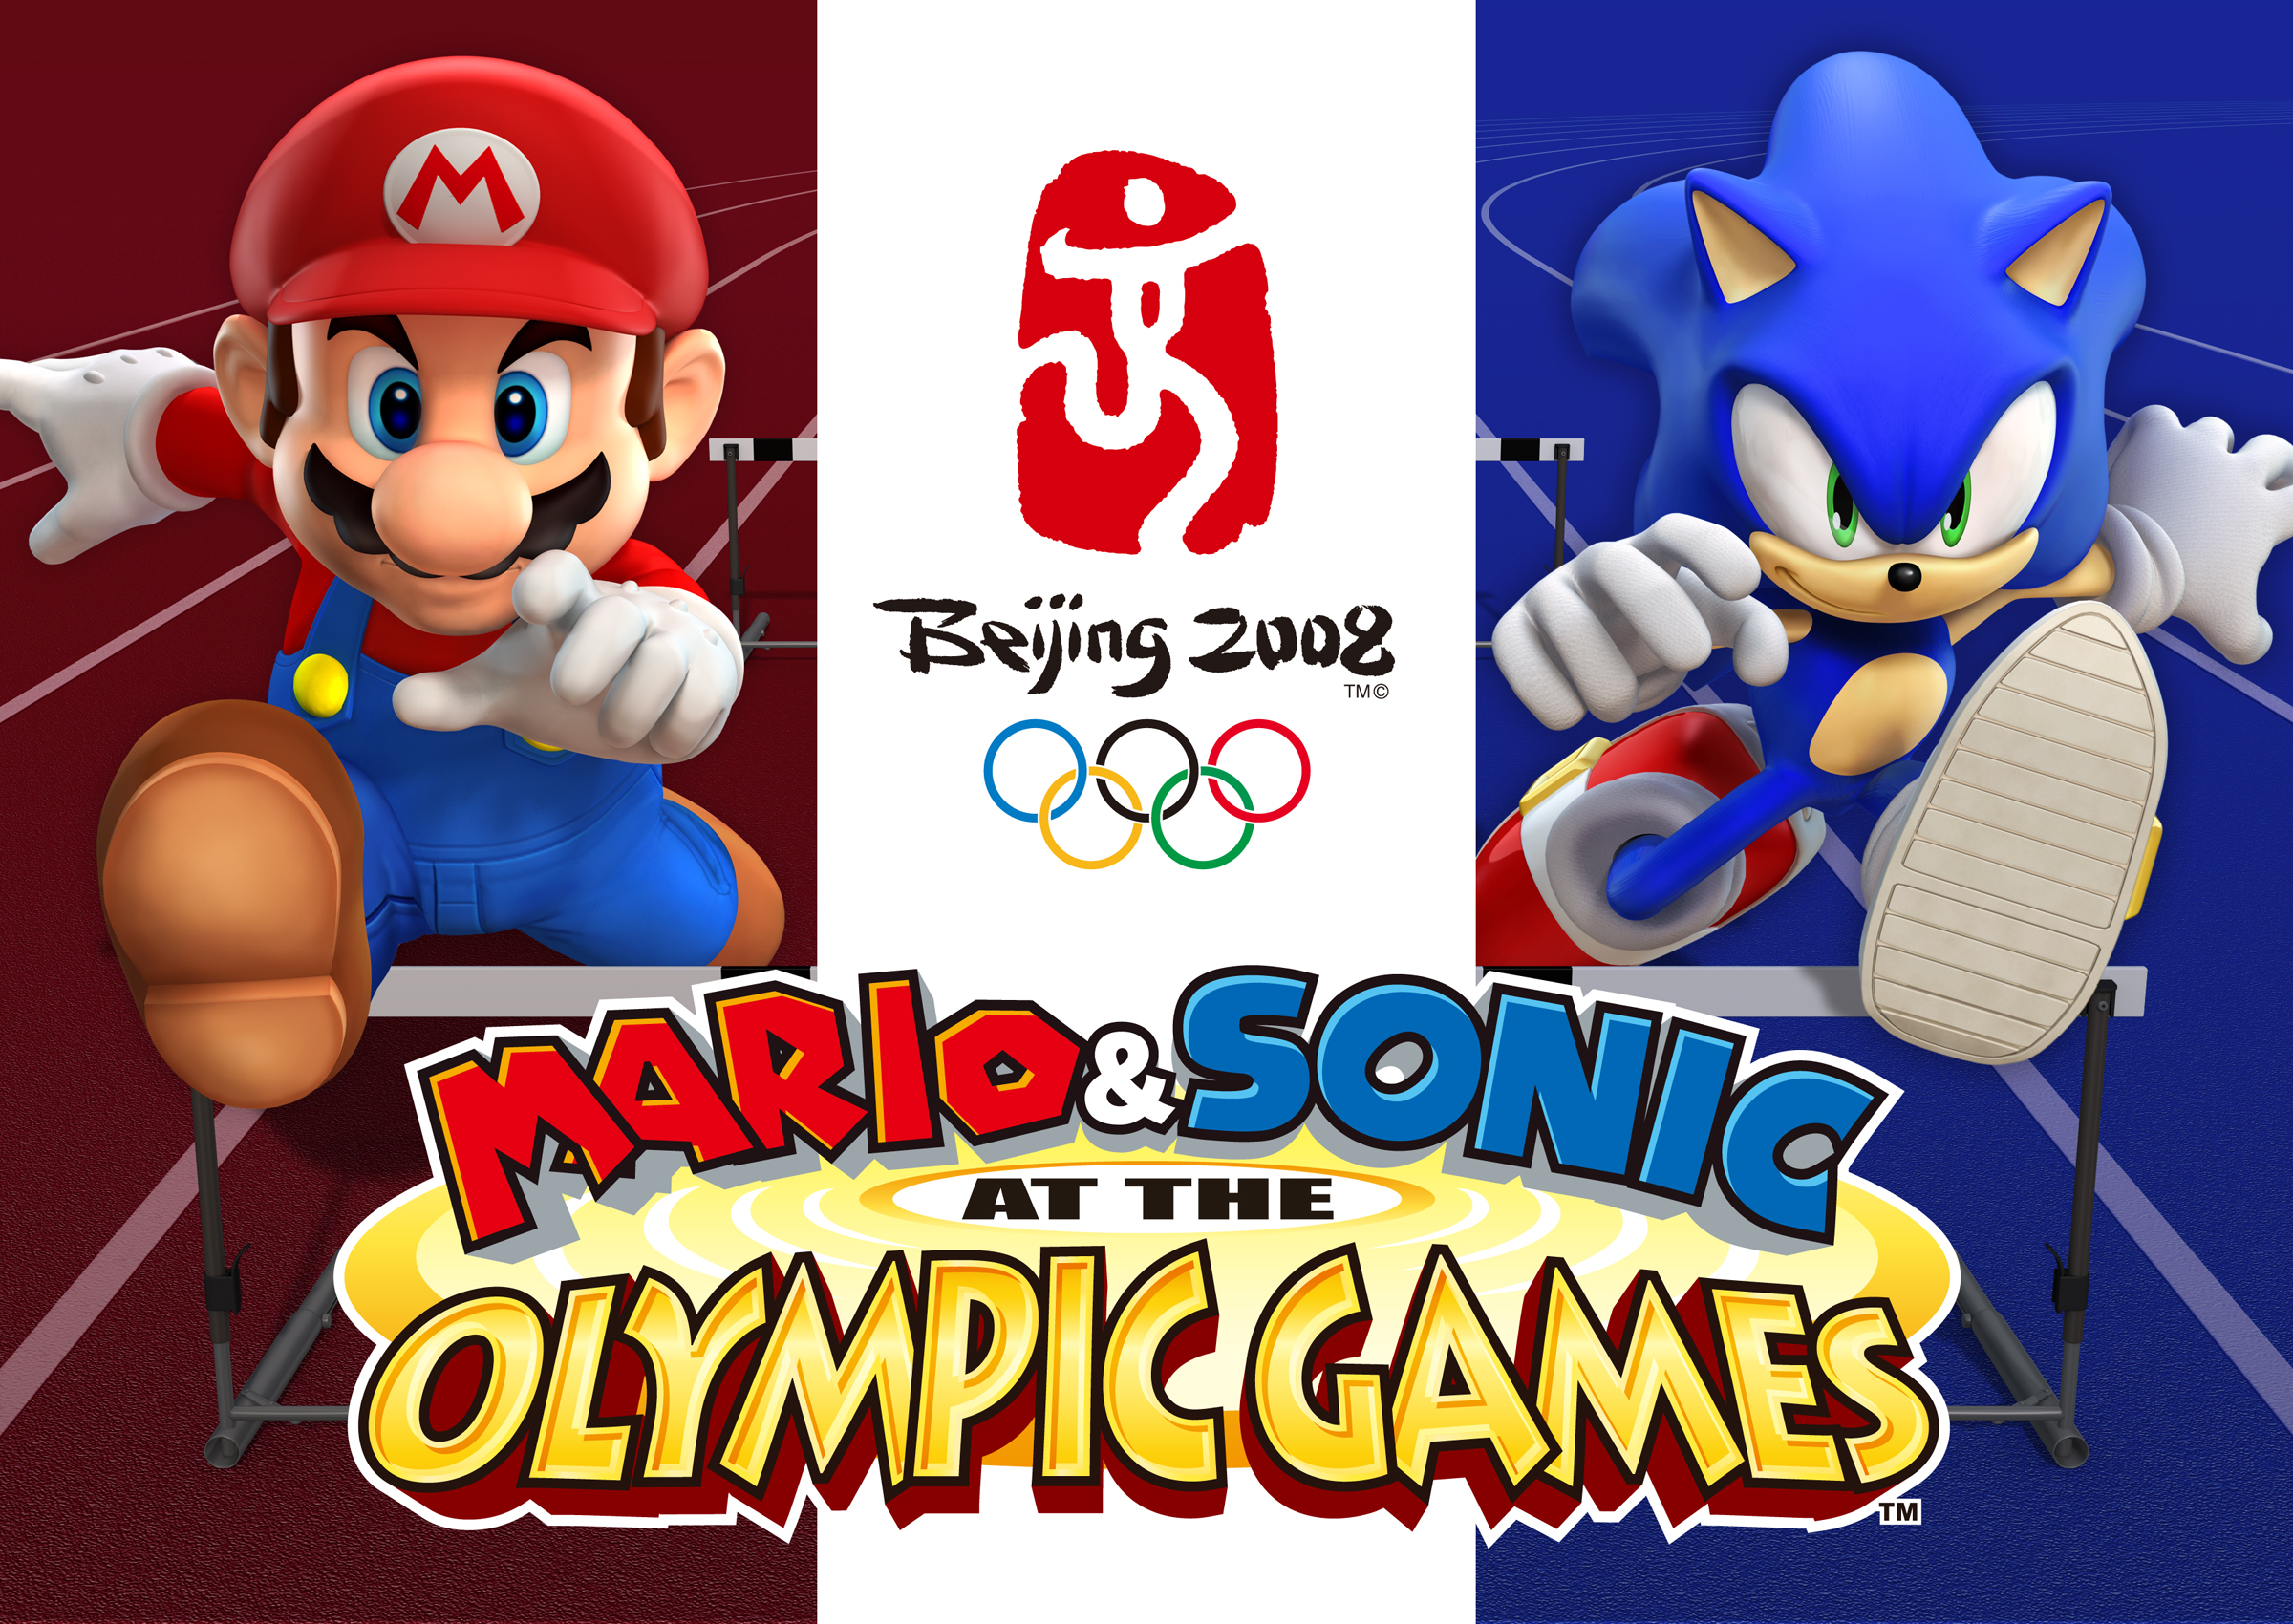 Mario 38 Sonic At The Olympic Games